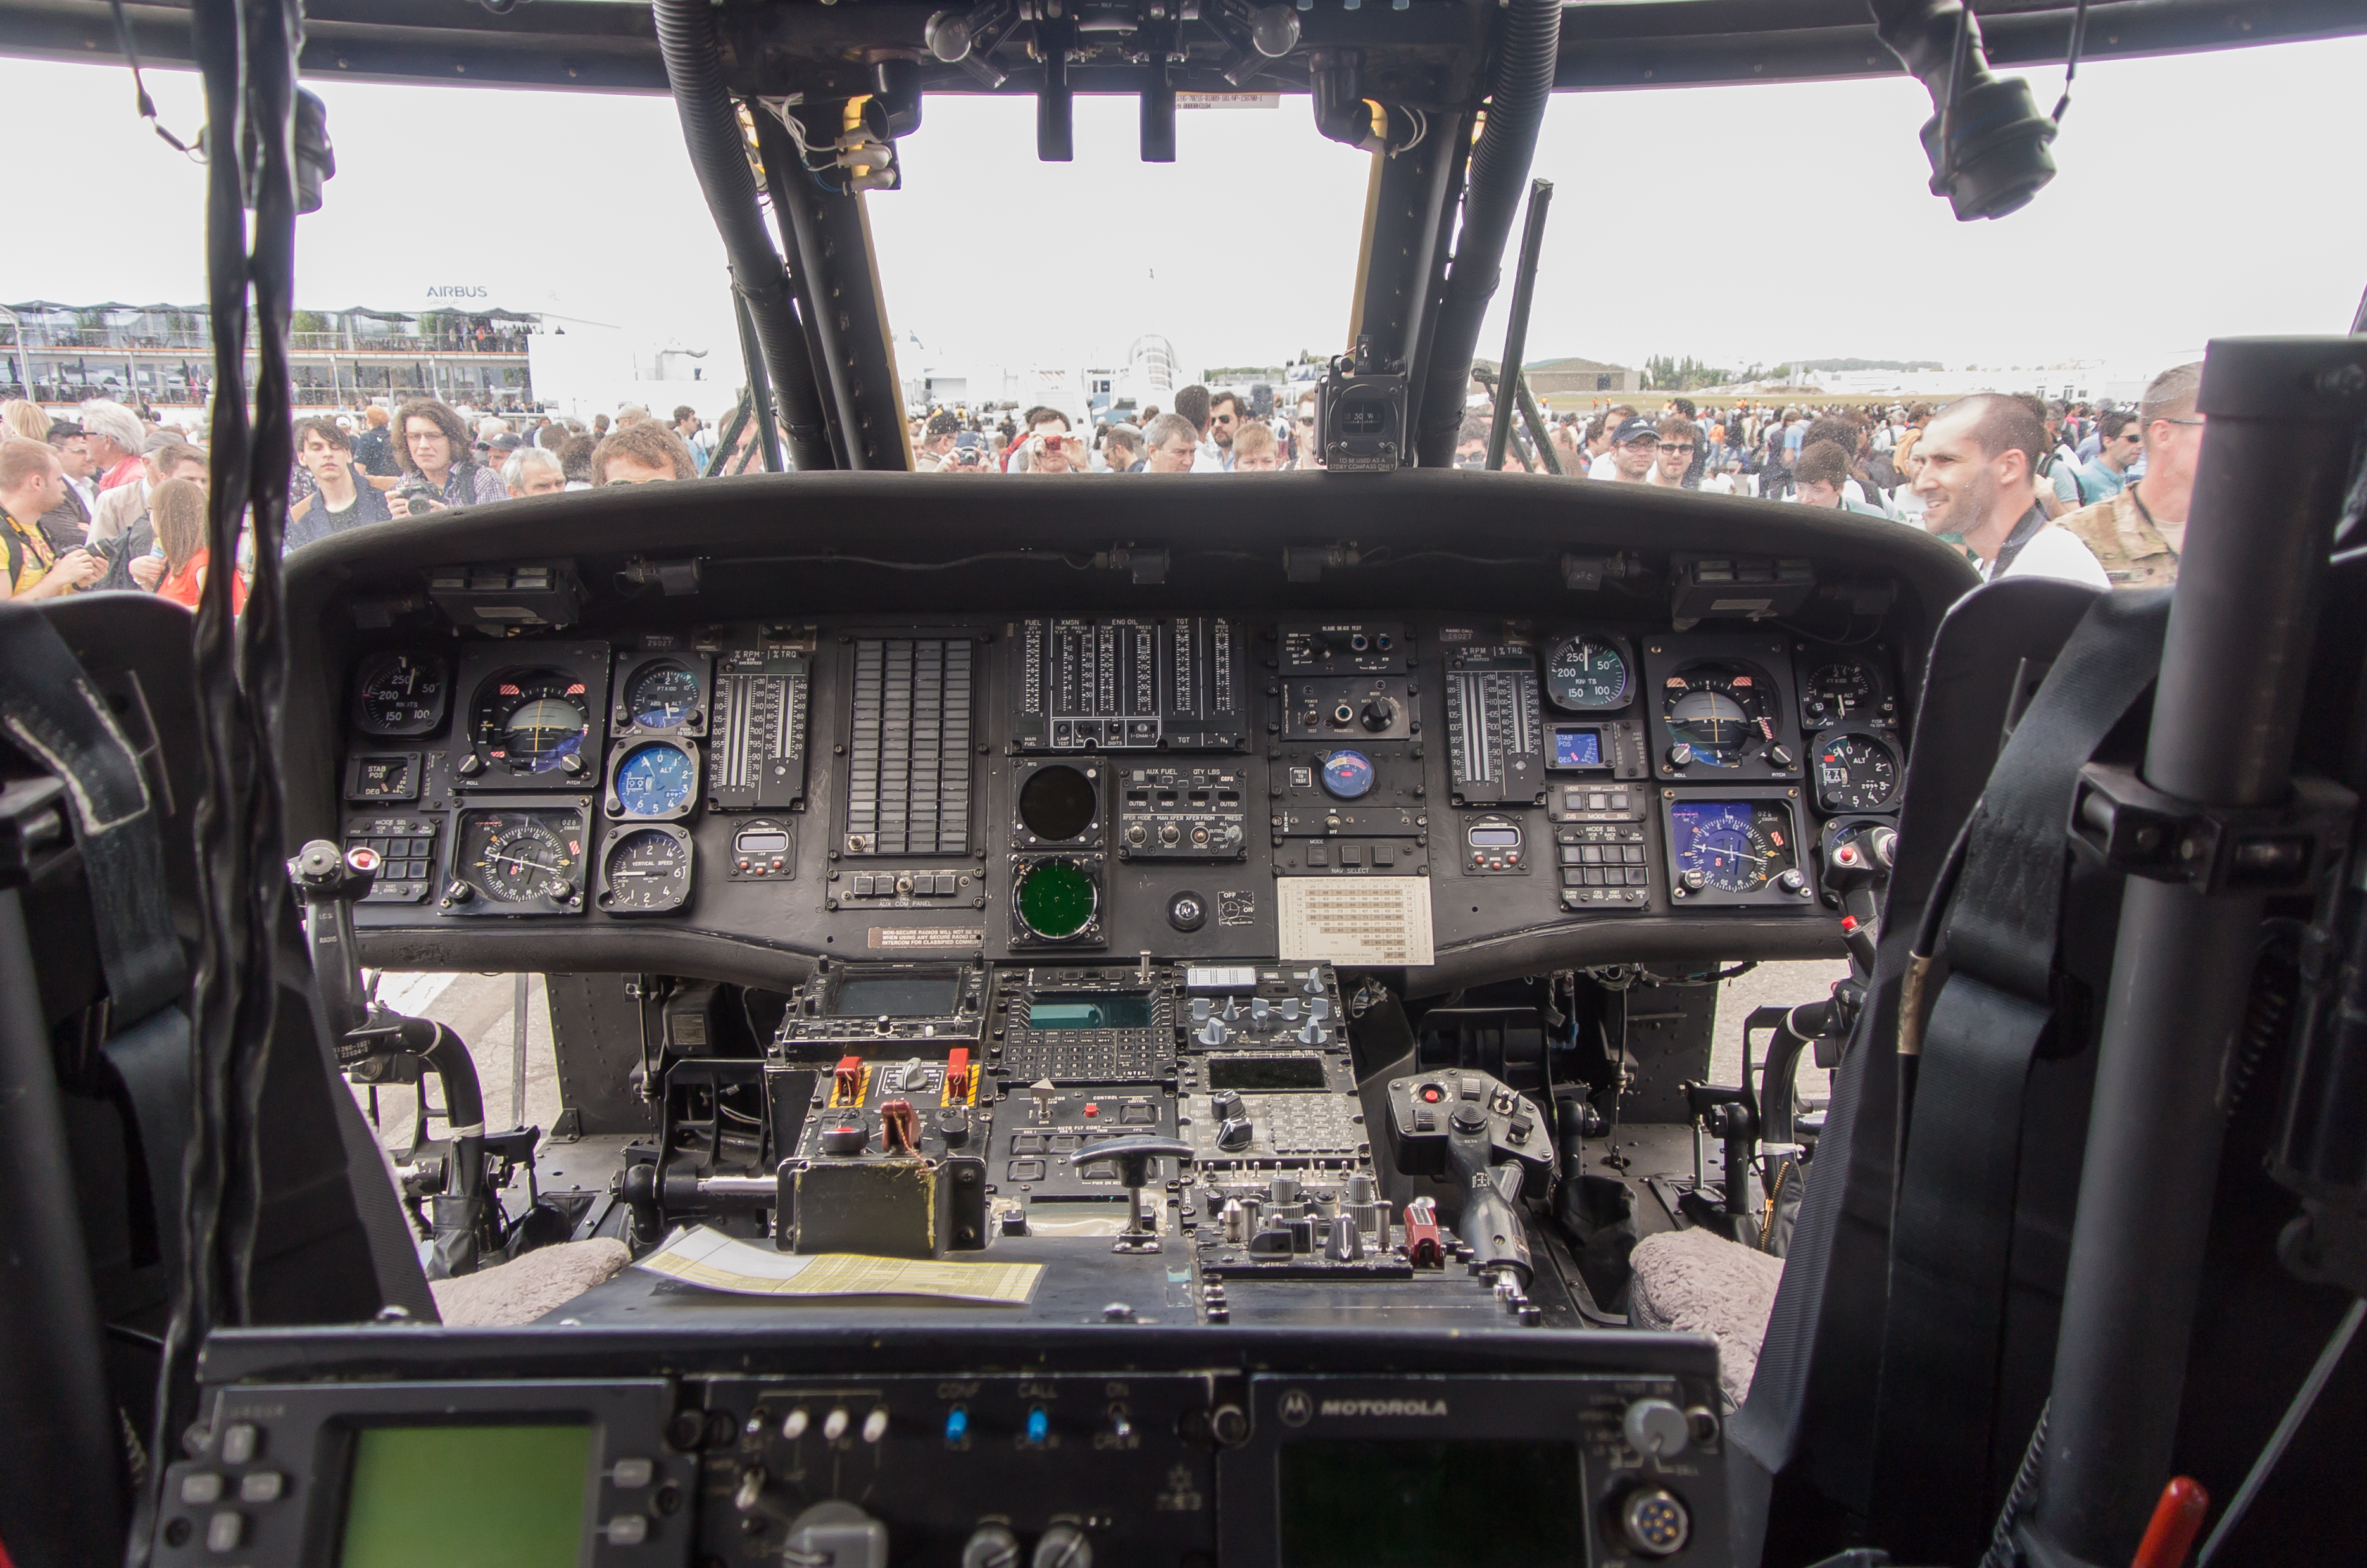 helicopter inside view with Uh 60 Cockpit on 100509 further Image2 likewise 175771649 besides Air Force One 0 additionally 20 Photos La Maison De Donald Trump Plus Belle Que La Maison Blanche Regardez Ce Luxe Insolent.